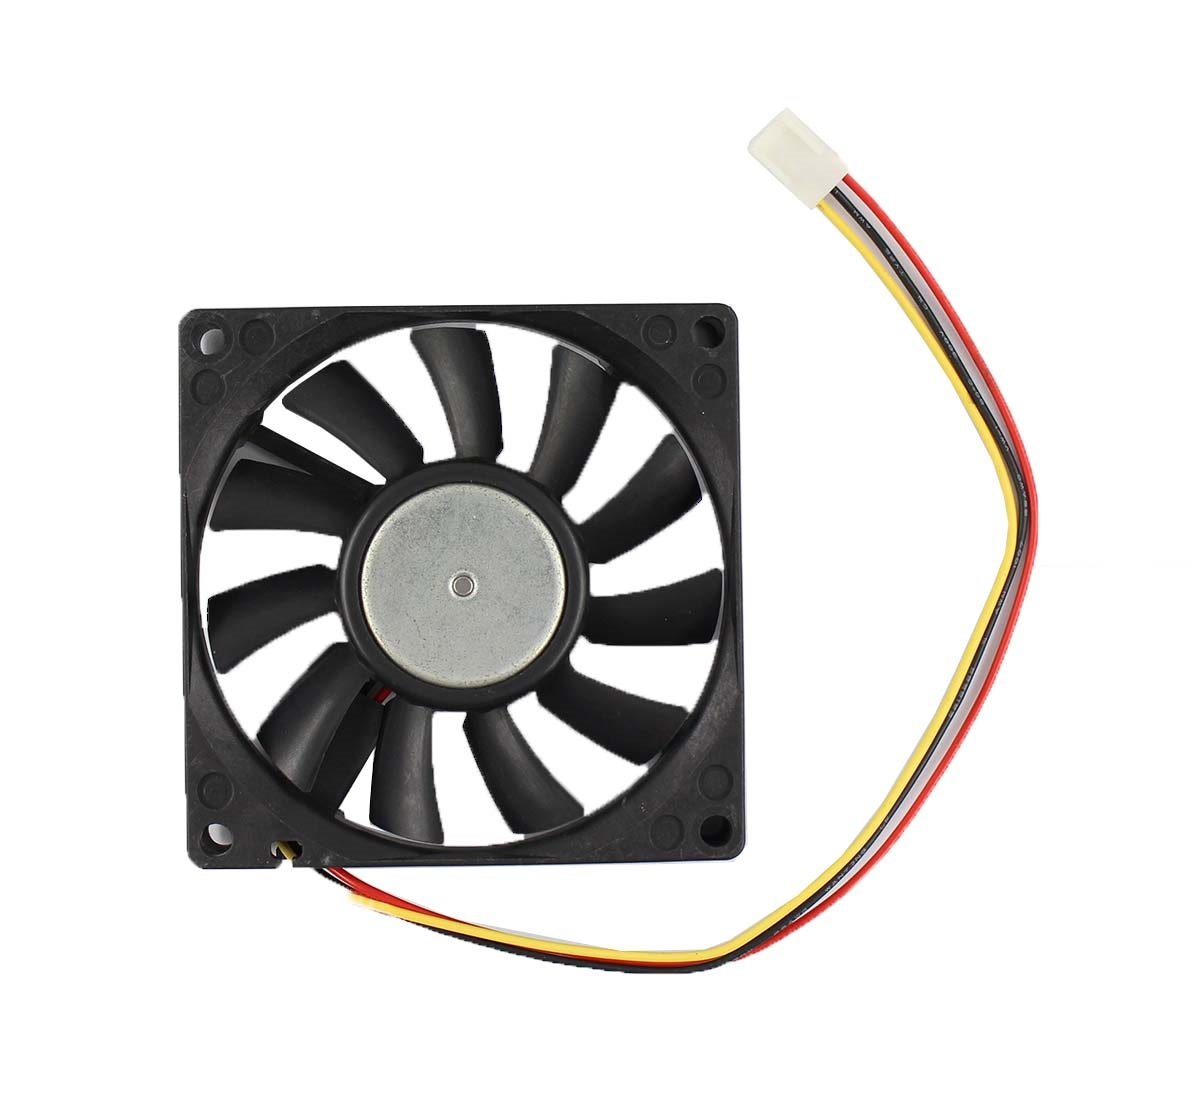 DC24V 0.17A Case Cooling Fan for Panaflo 8015 FBK08T24H 808015mm Power connection 3pins